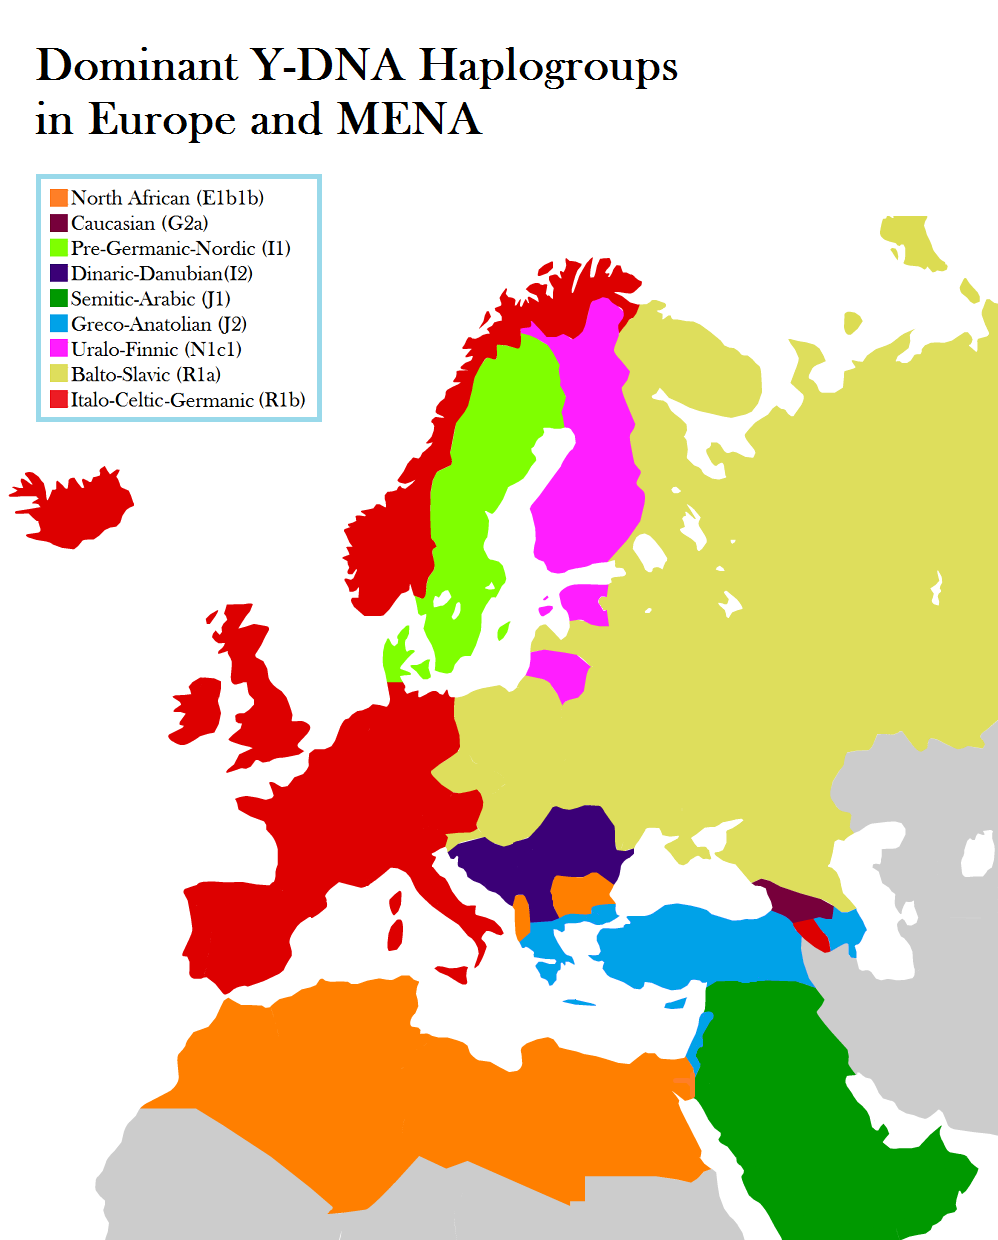 Dominant Y-DNA Haplogroups in Europe, Middle East & North Africa